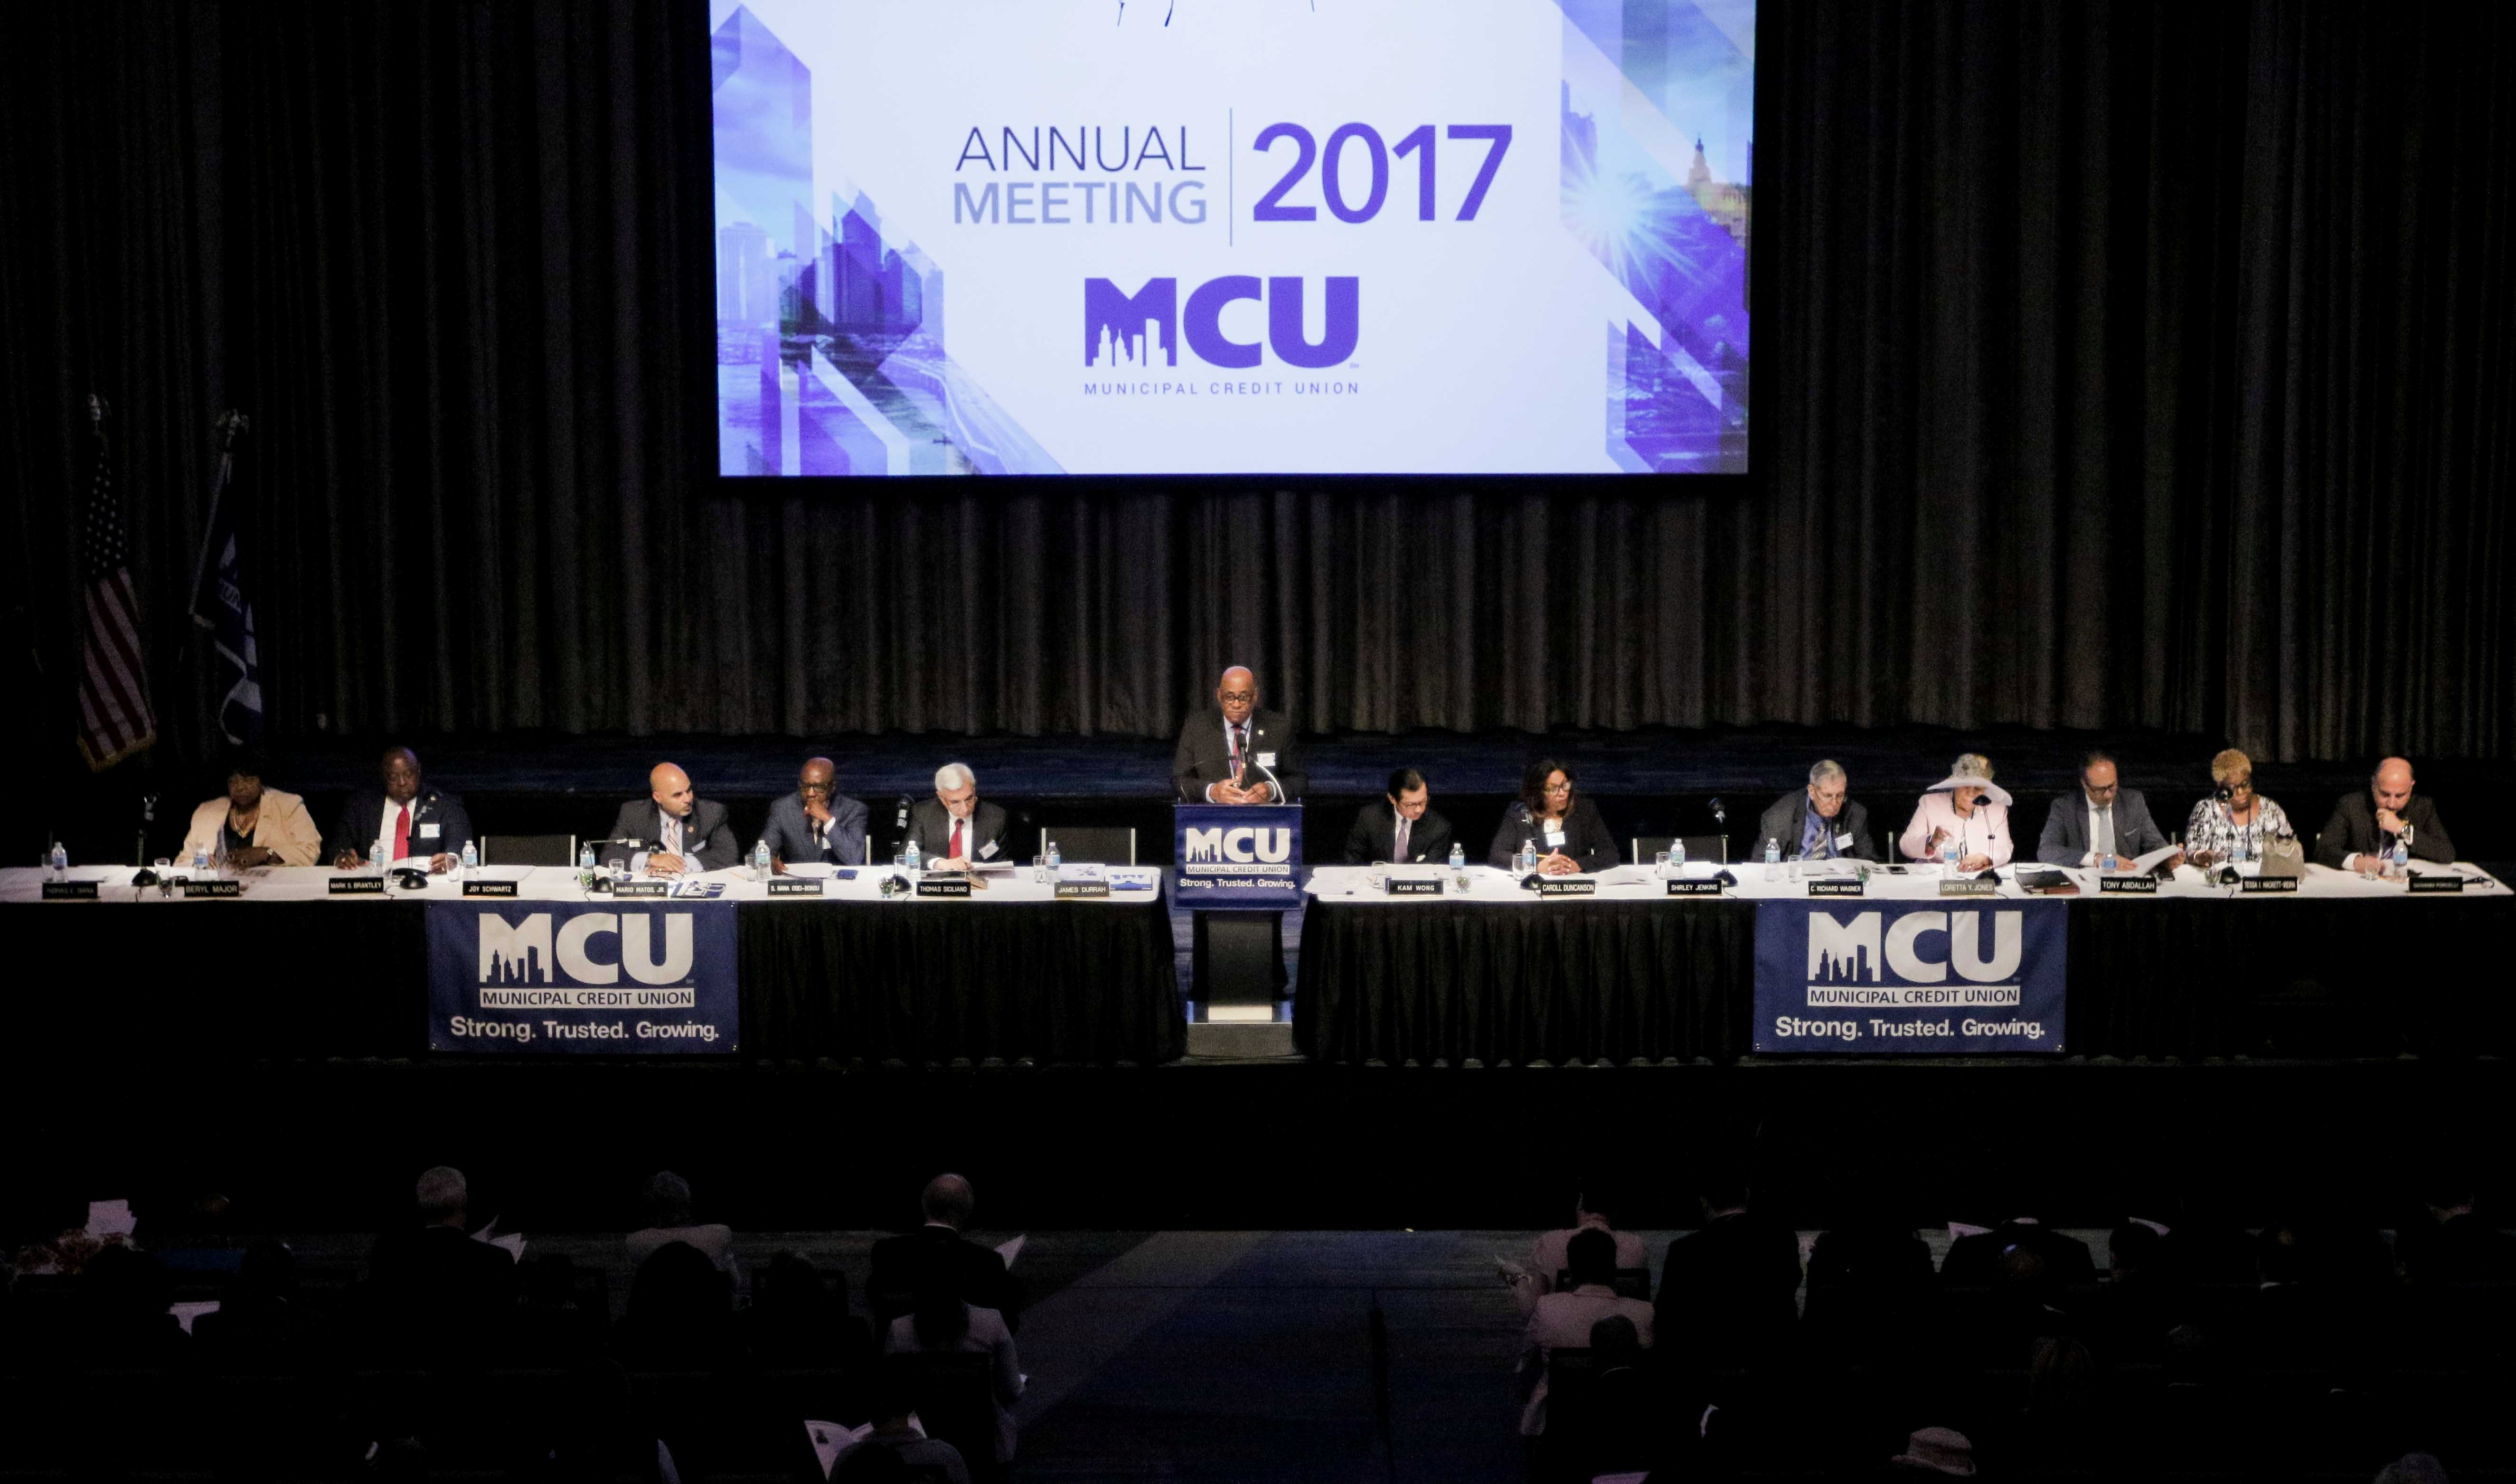 MCU's 2017 annual meeting was held on May 10, 2017 at the New York Hilton Midtown Manhattan Hotel